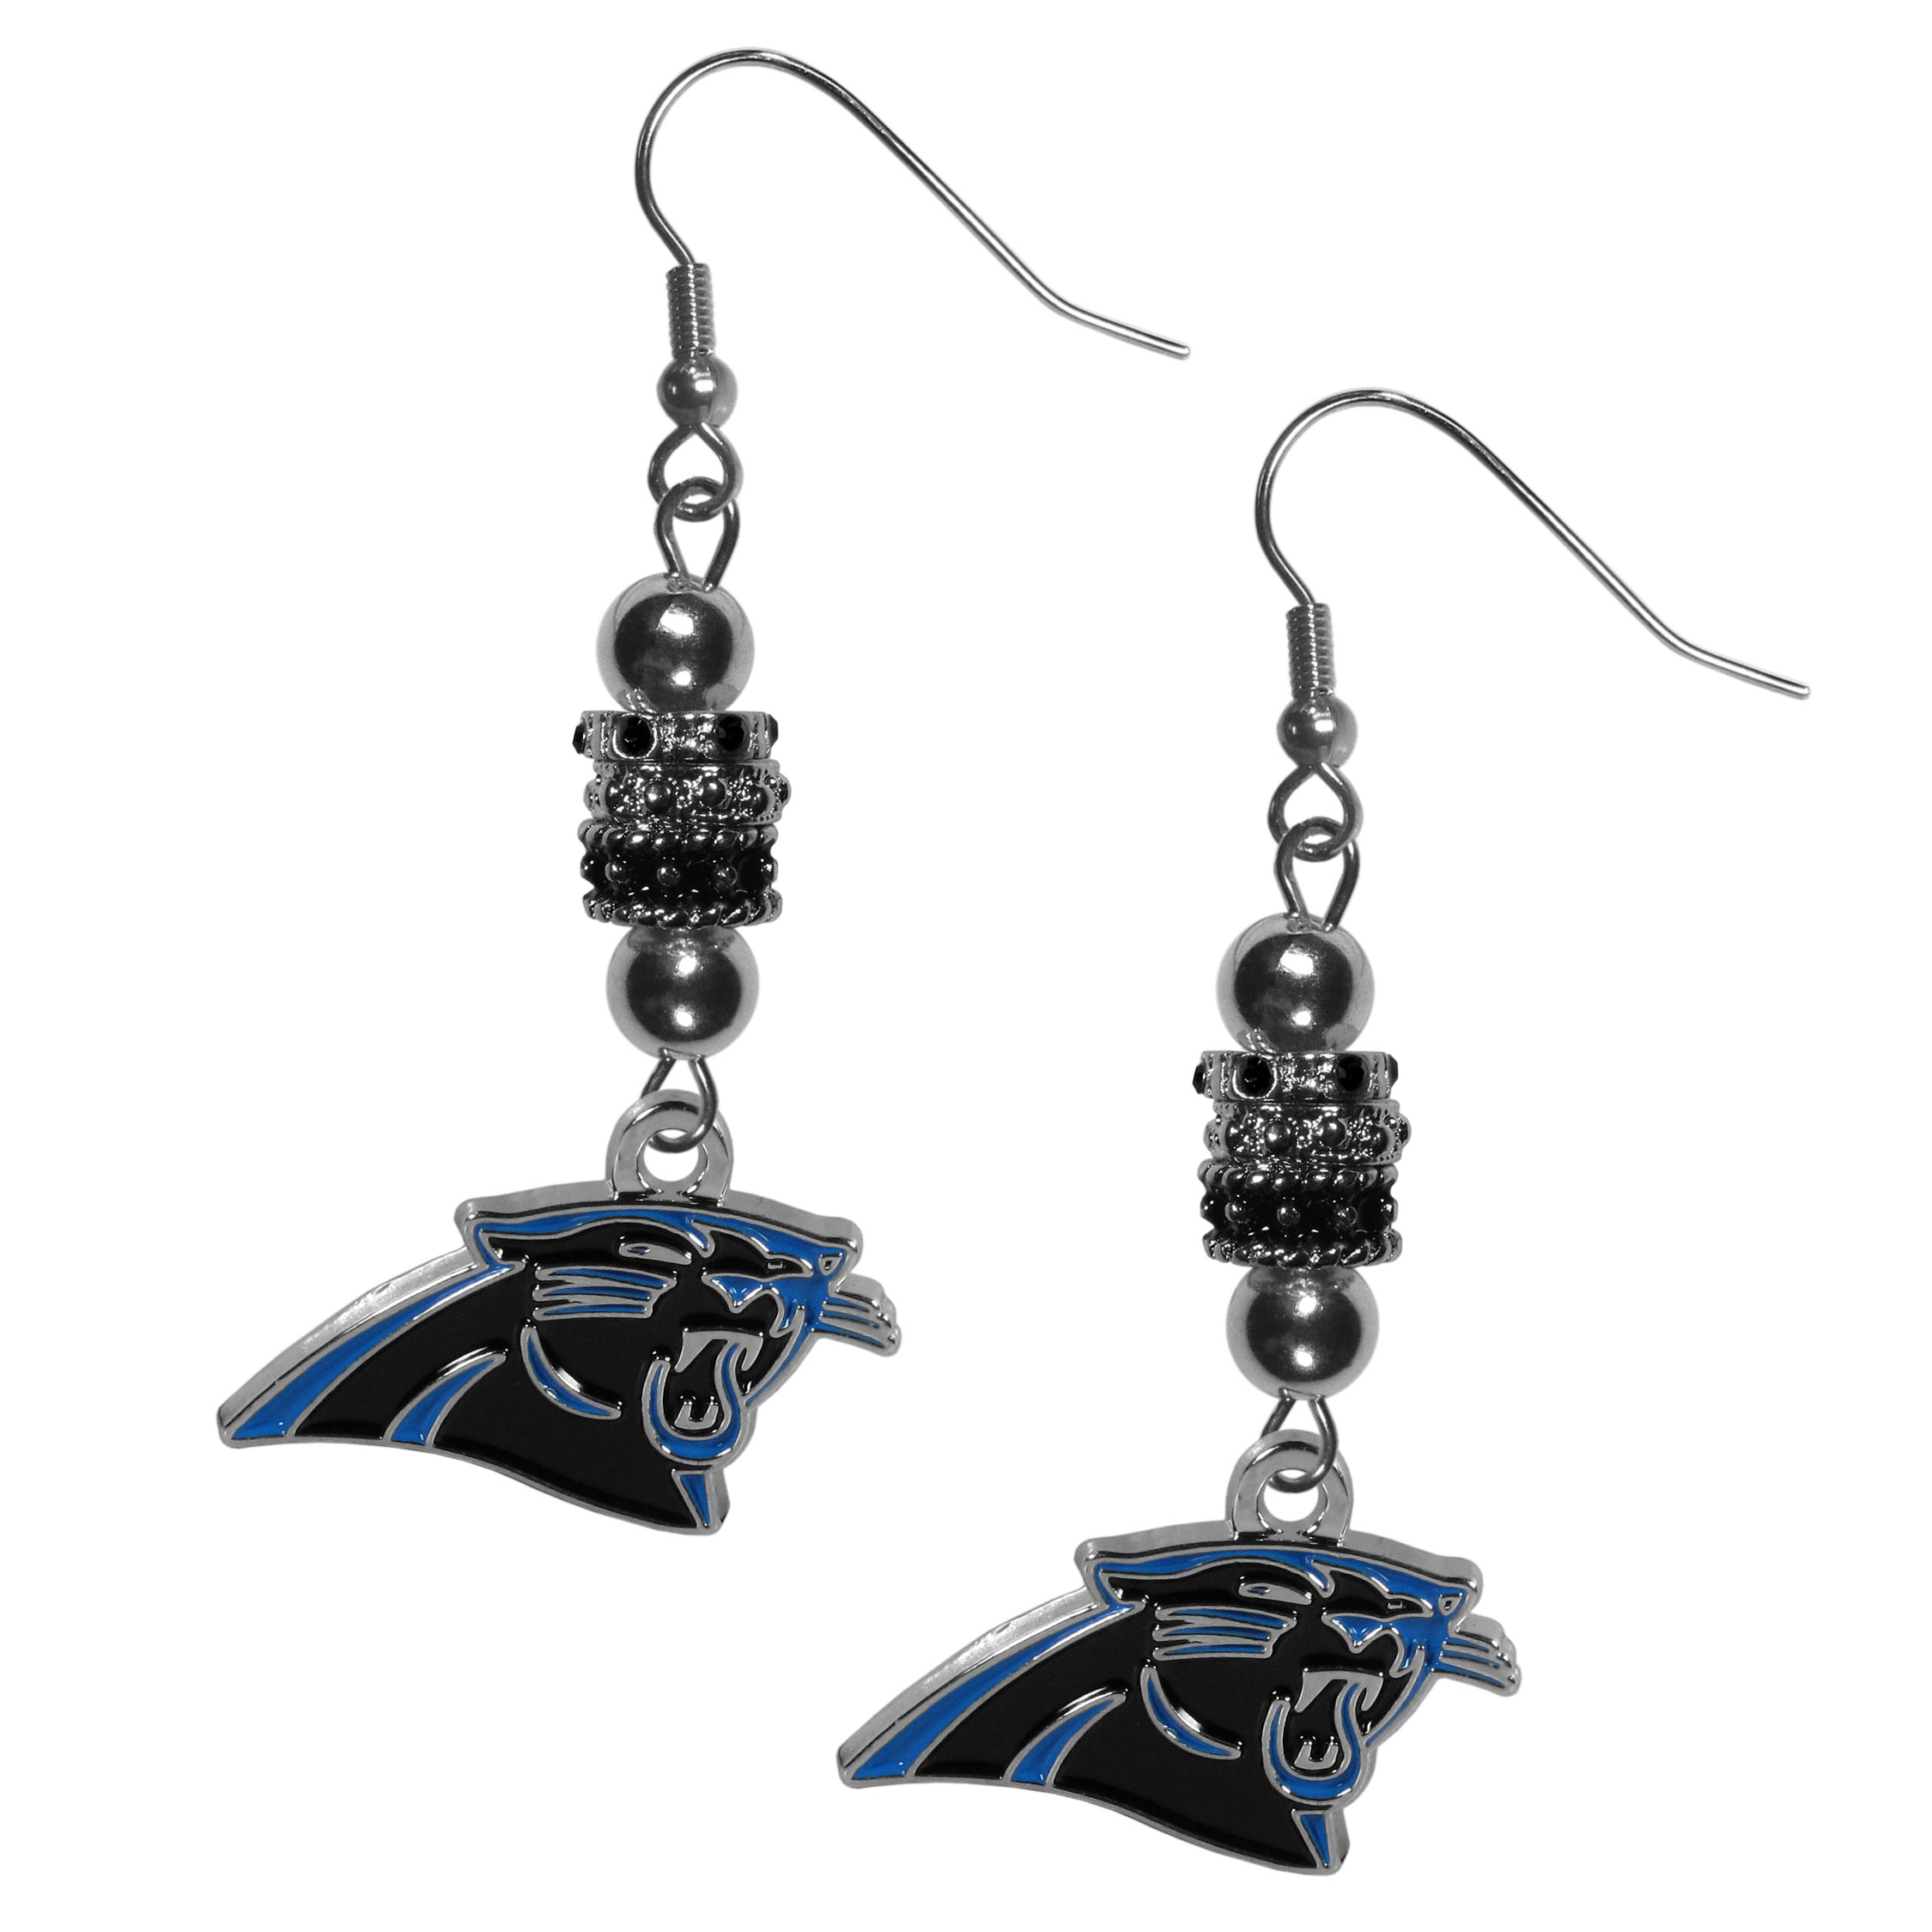 Carolina Panthers Euro Bead Earrings - These beautiful euro style earrings feature 3 euro beads and a detailed Carolina Panthers charm on hypoallergenic fishhook posts.